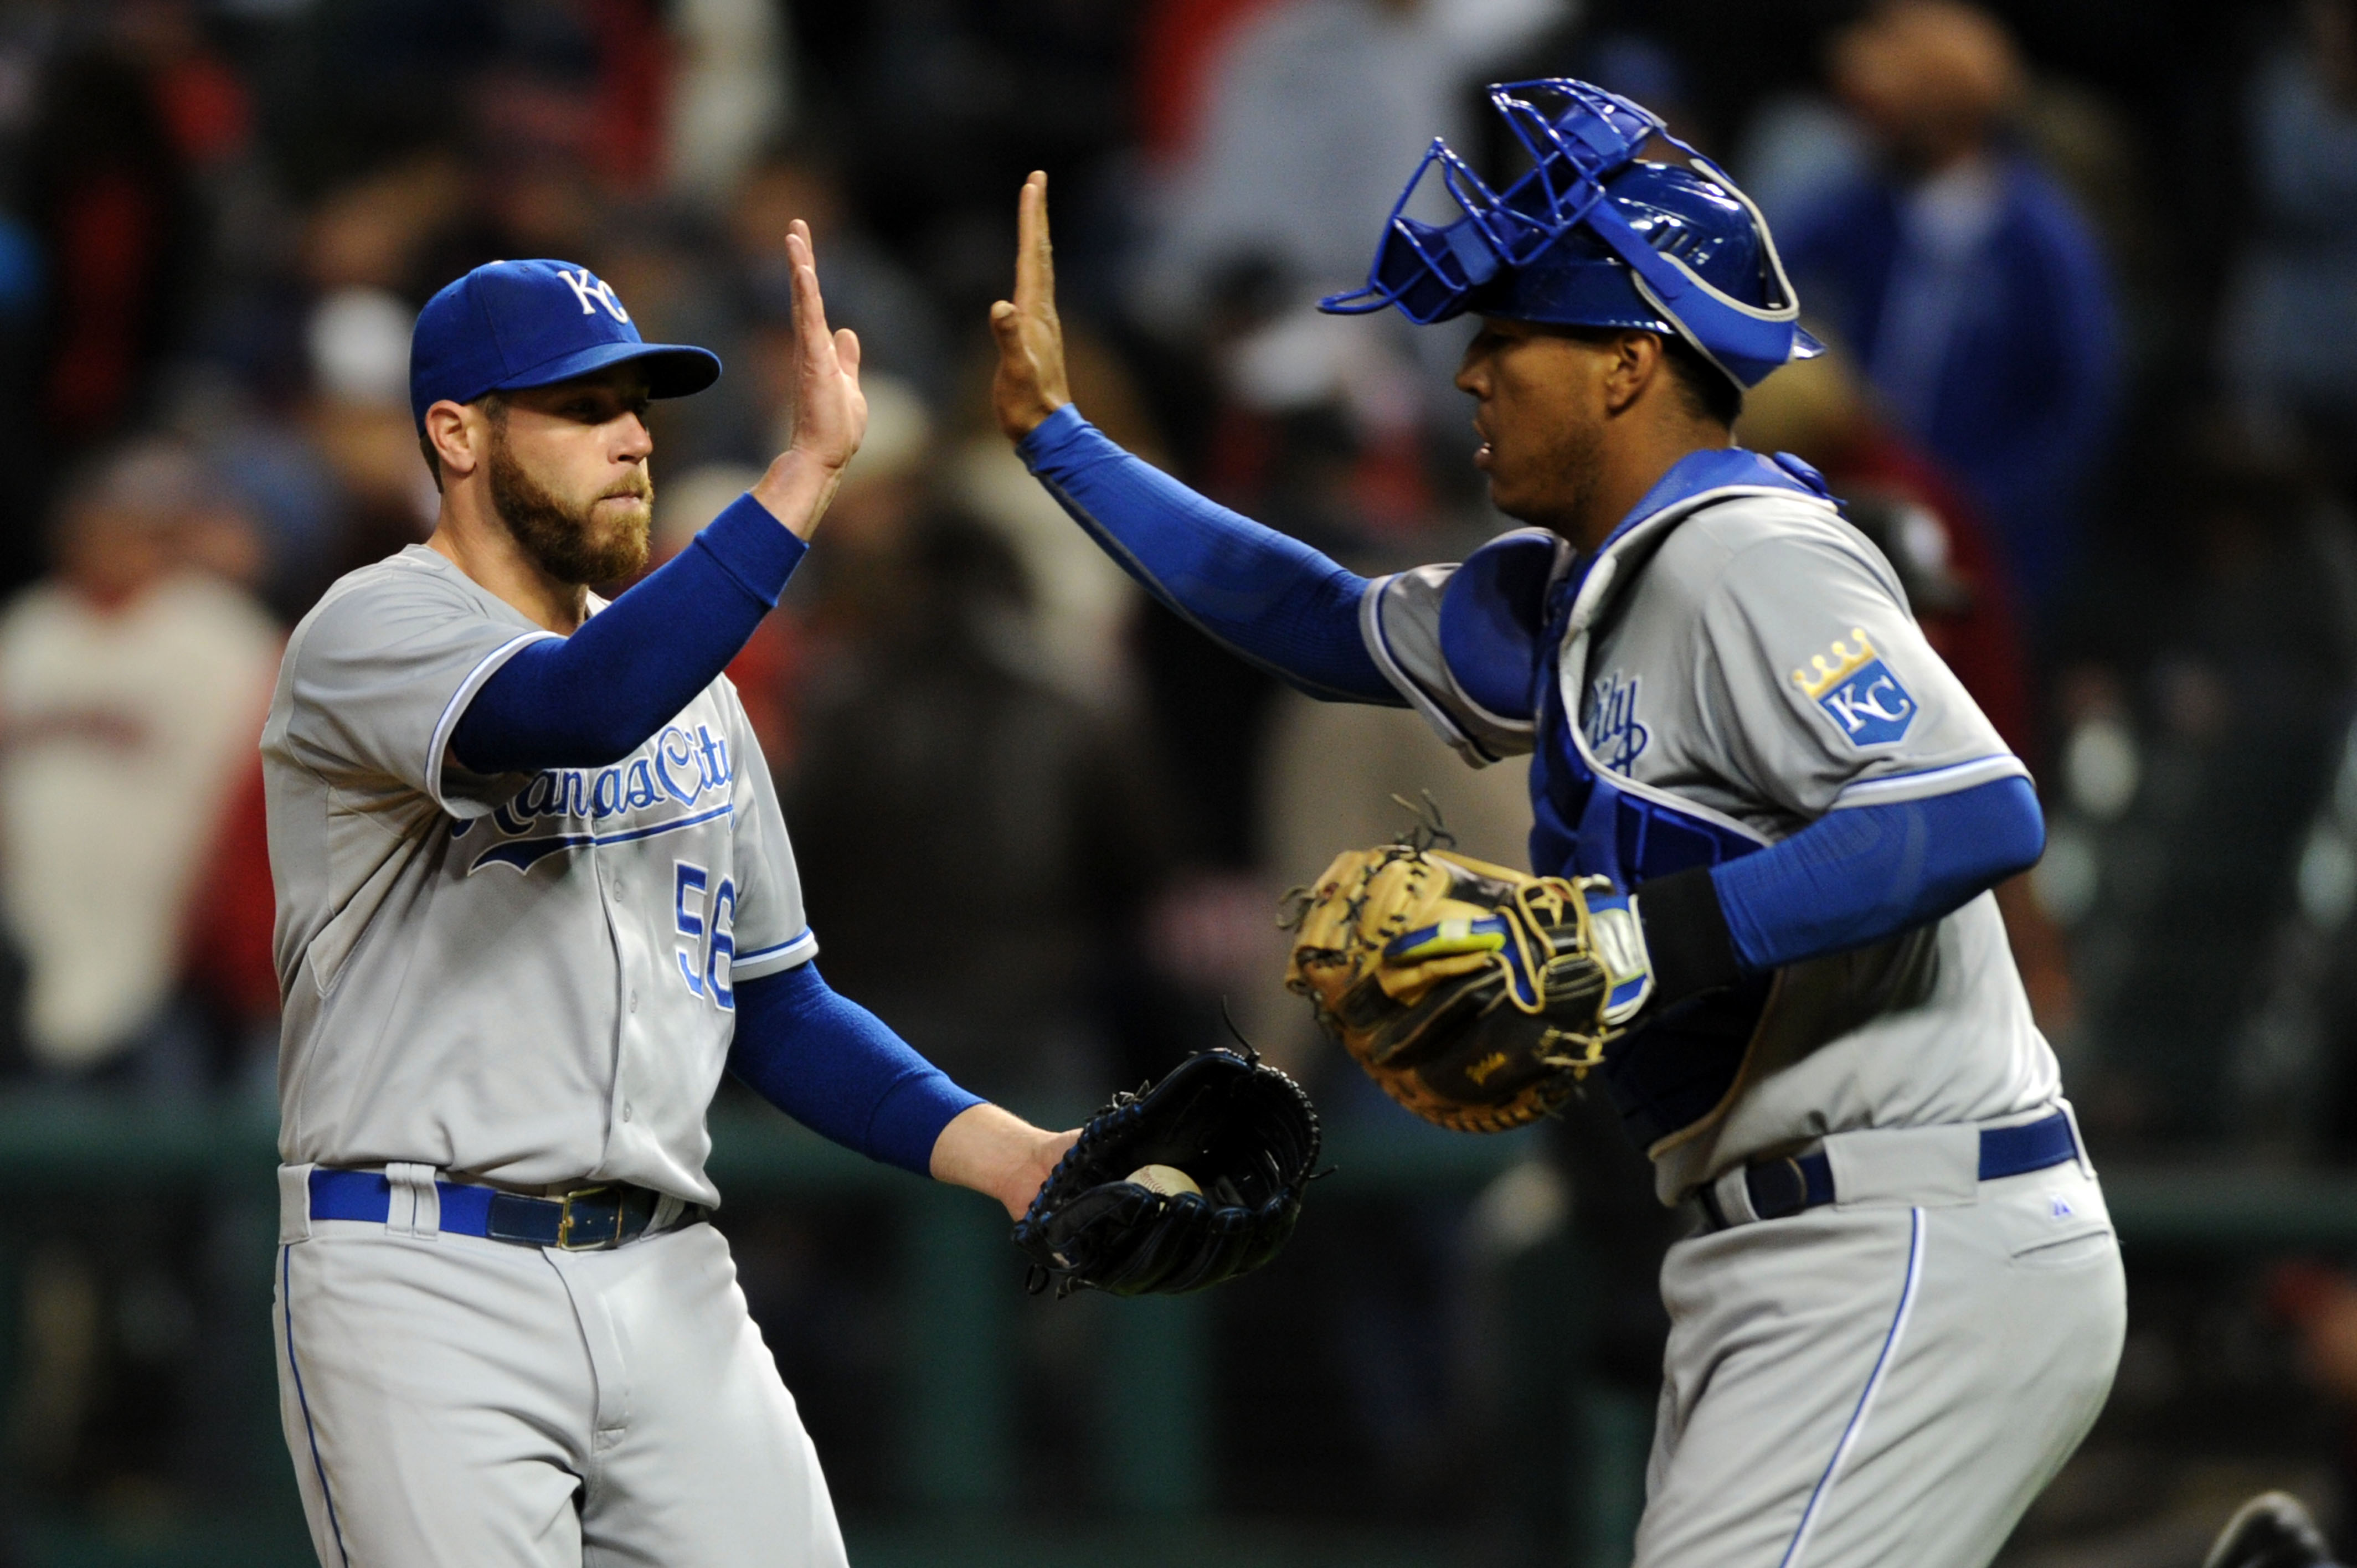 Royals closer Greg Holland is a big part of the team's success. (USA TODAY Sports)